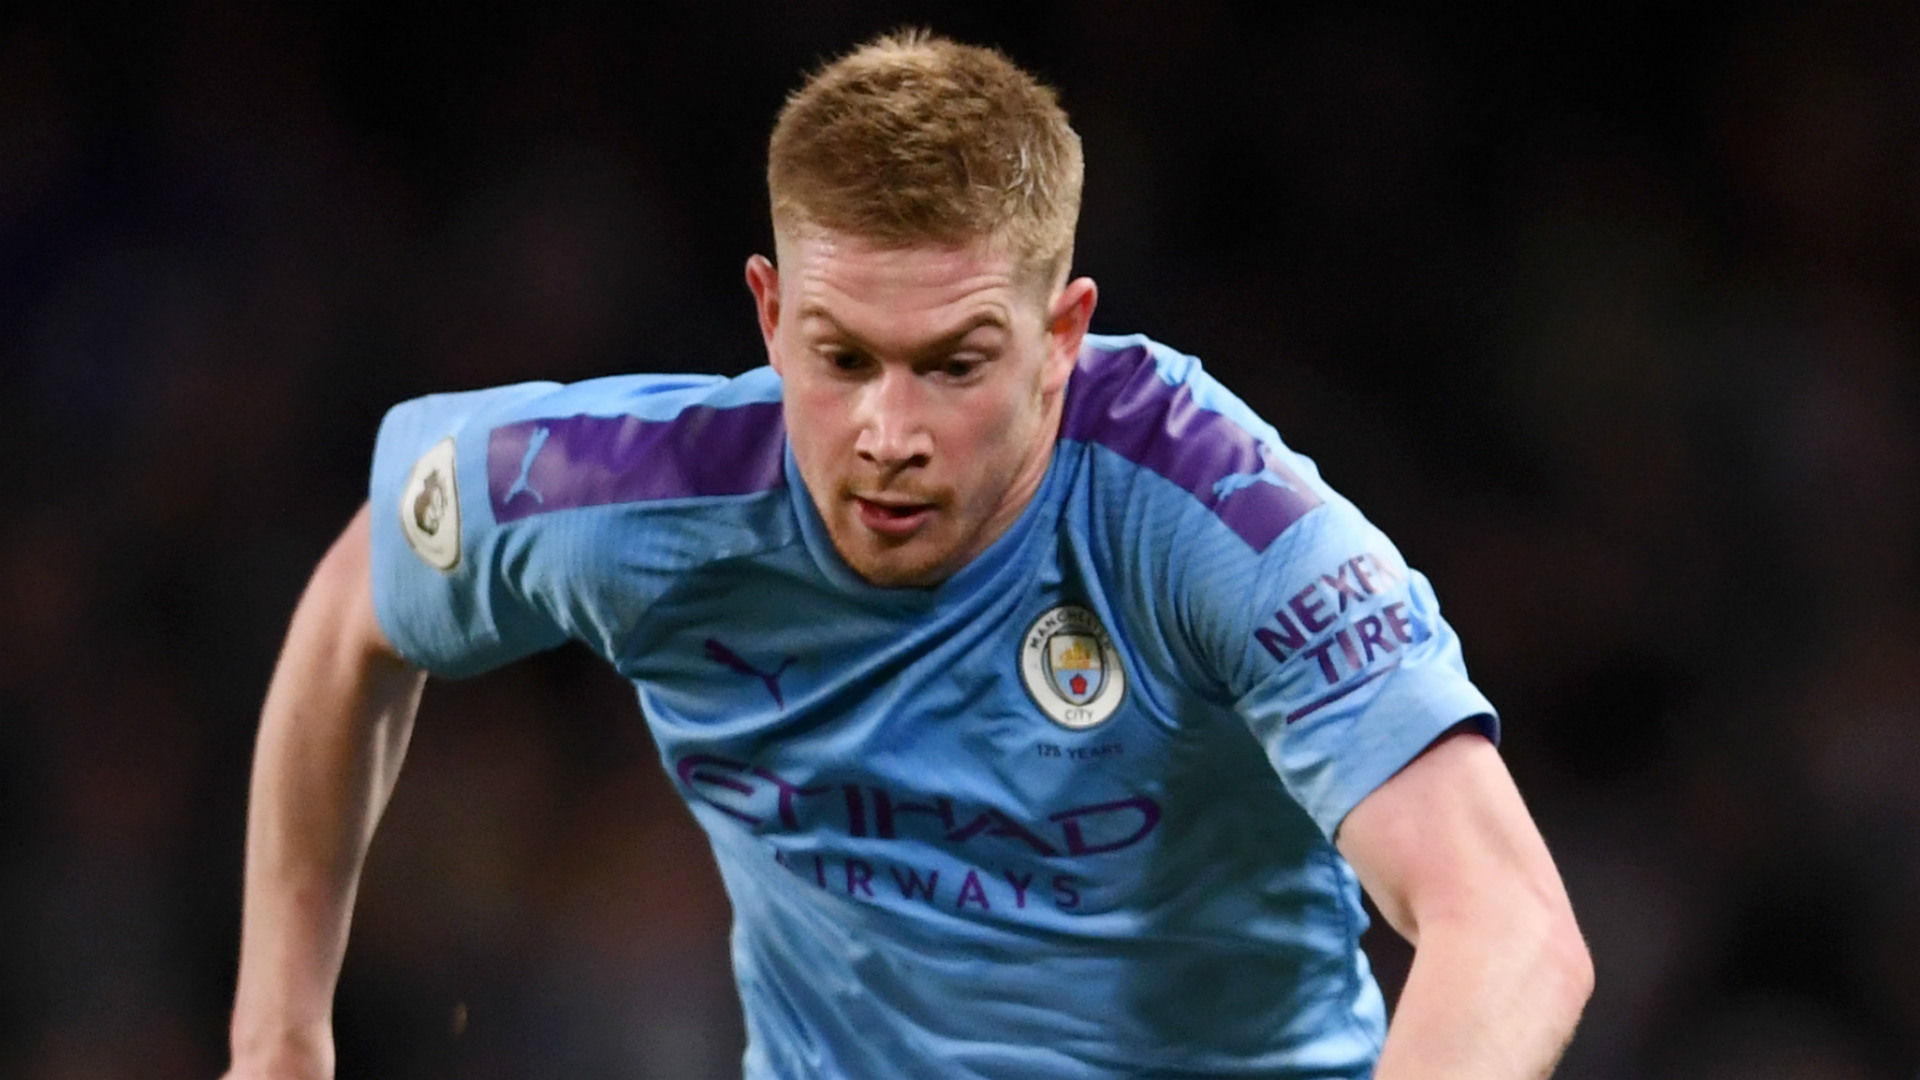 De Bruyne's agent responds to Manchester City exit talk and suggestions European ban could lead to move